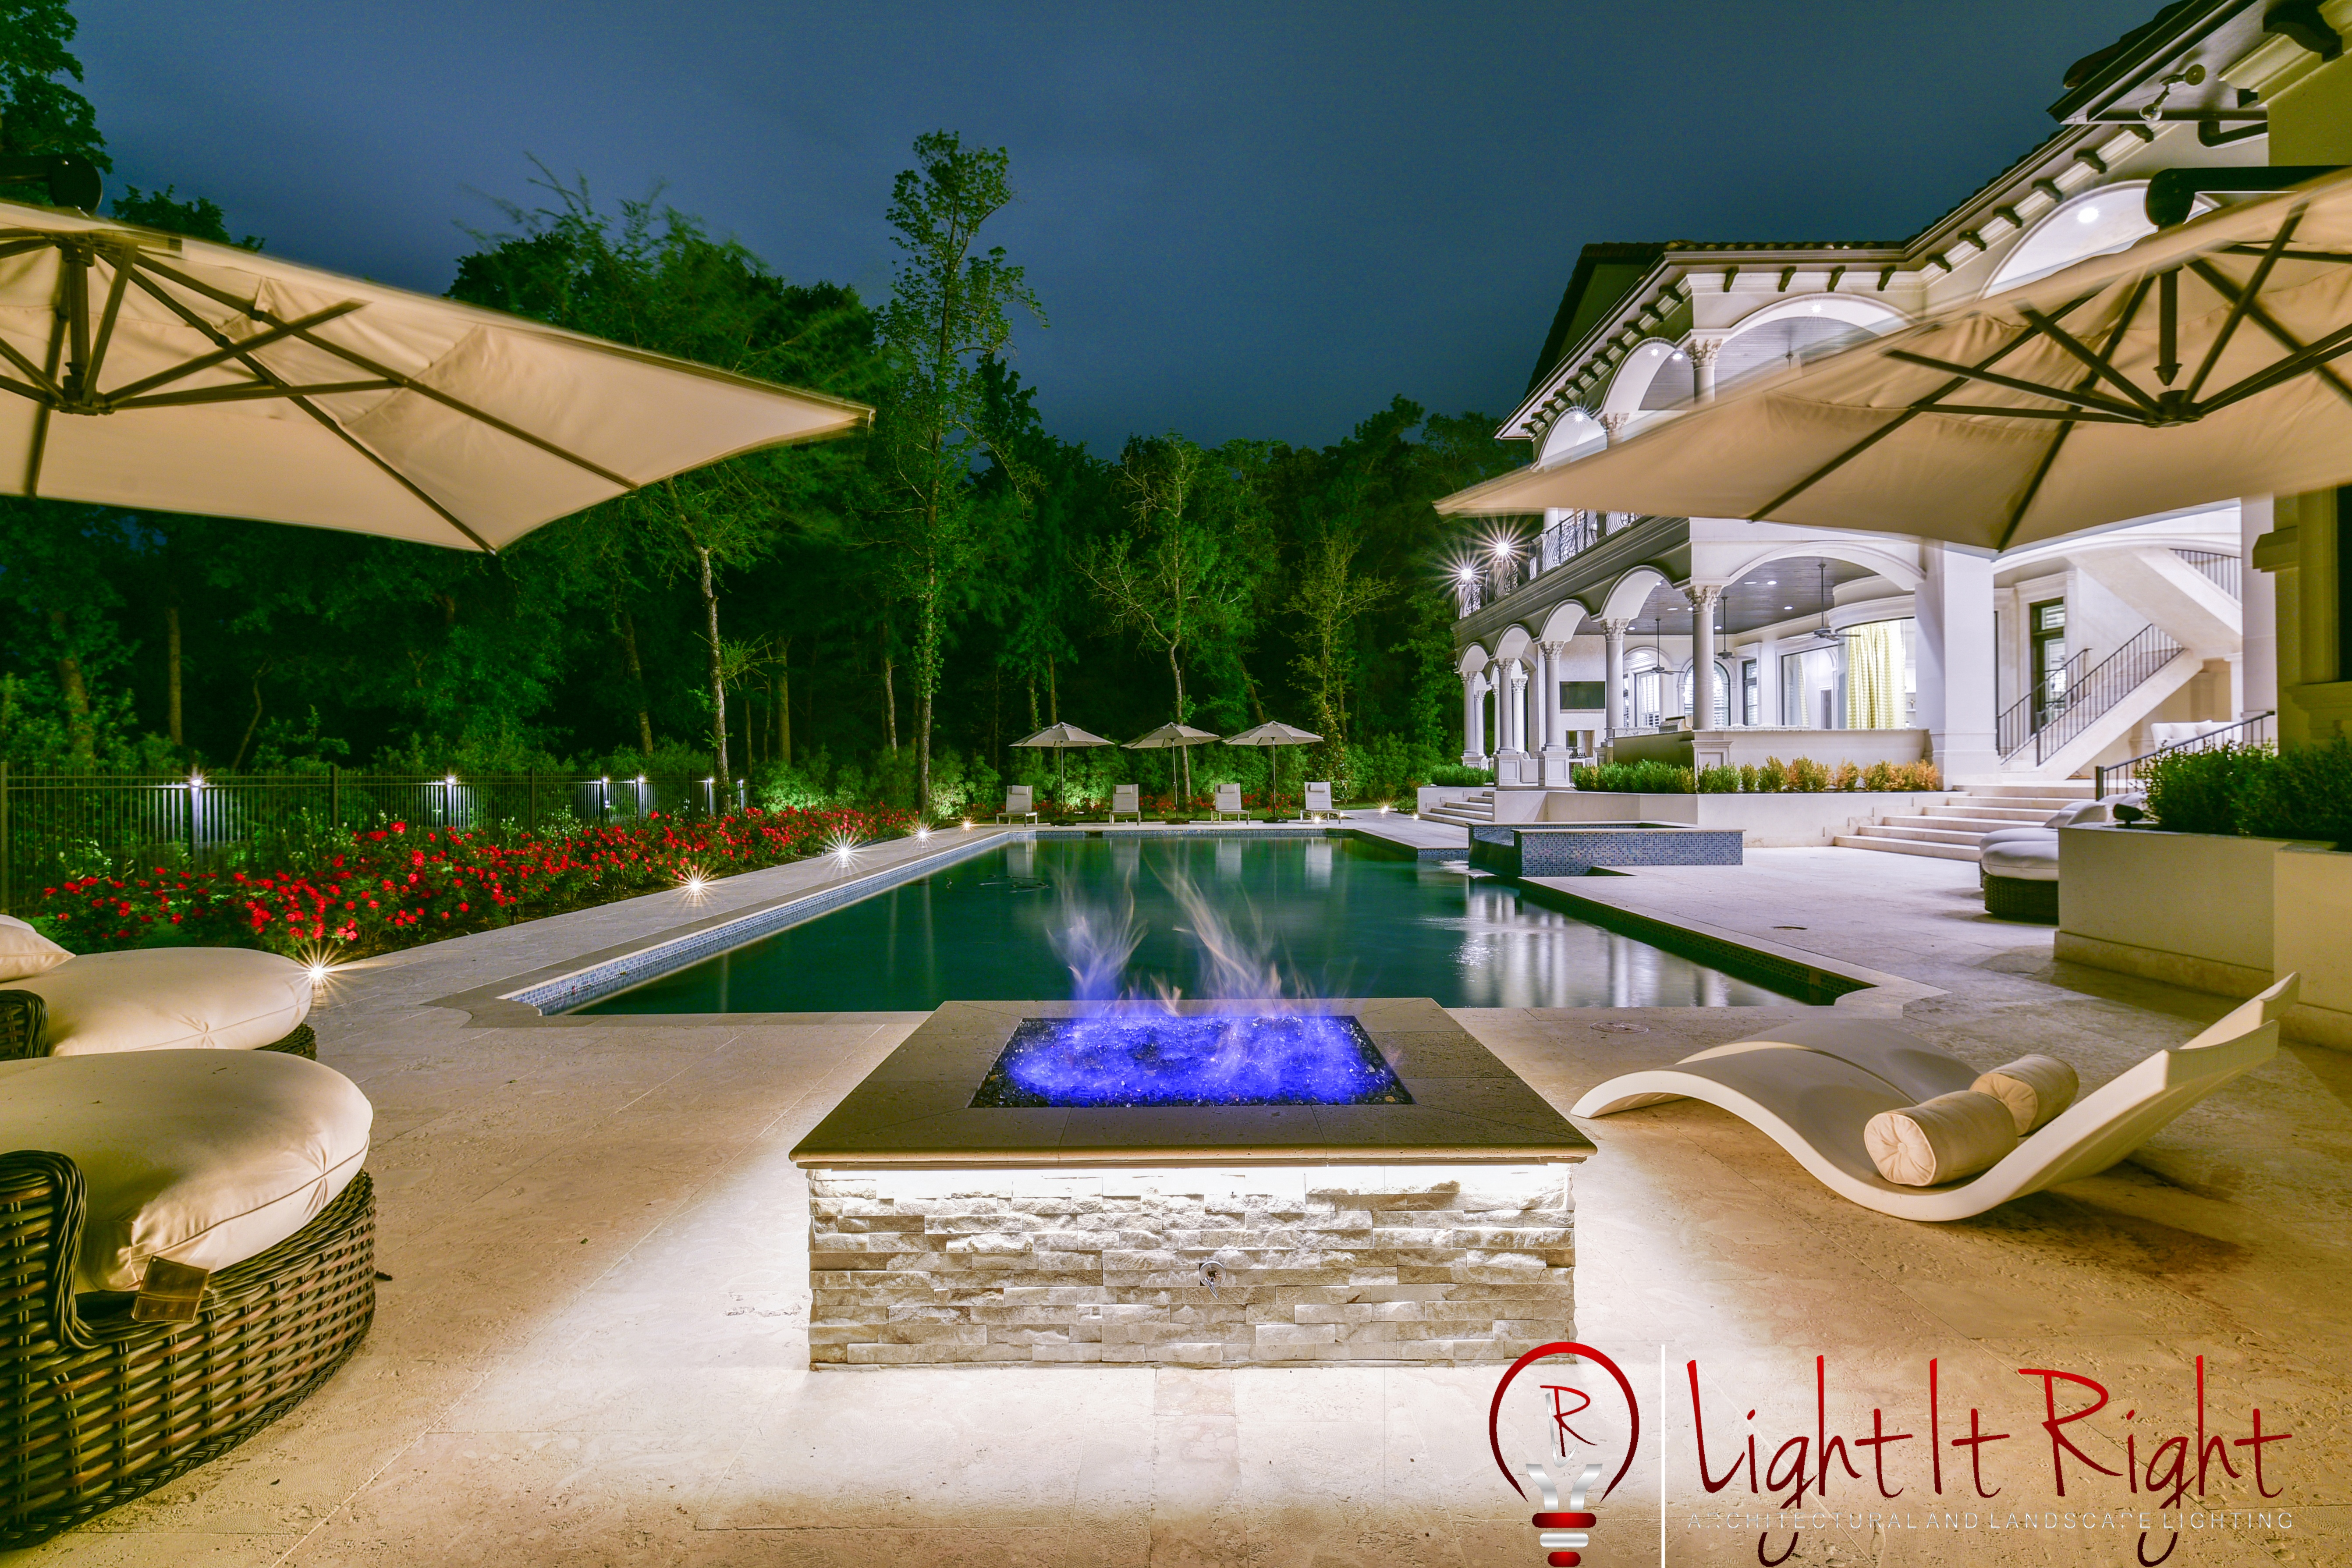 Outdoor Lighting and Entertaining - the Social Distancing Edition